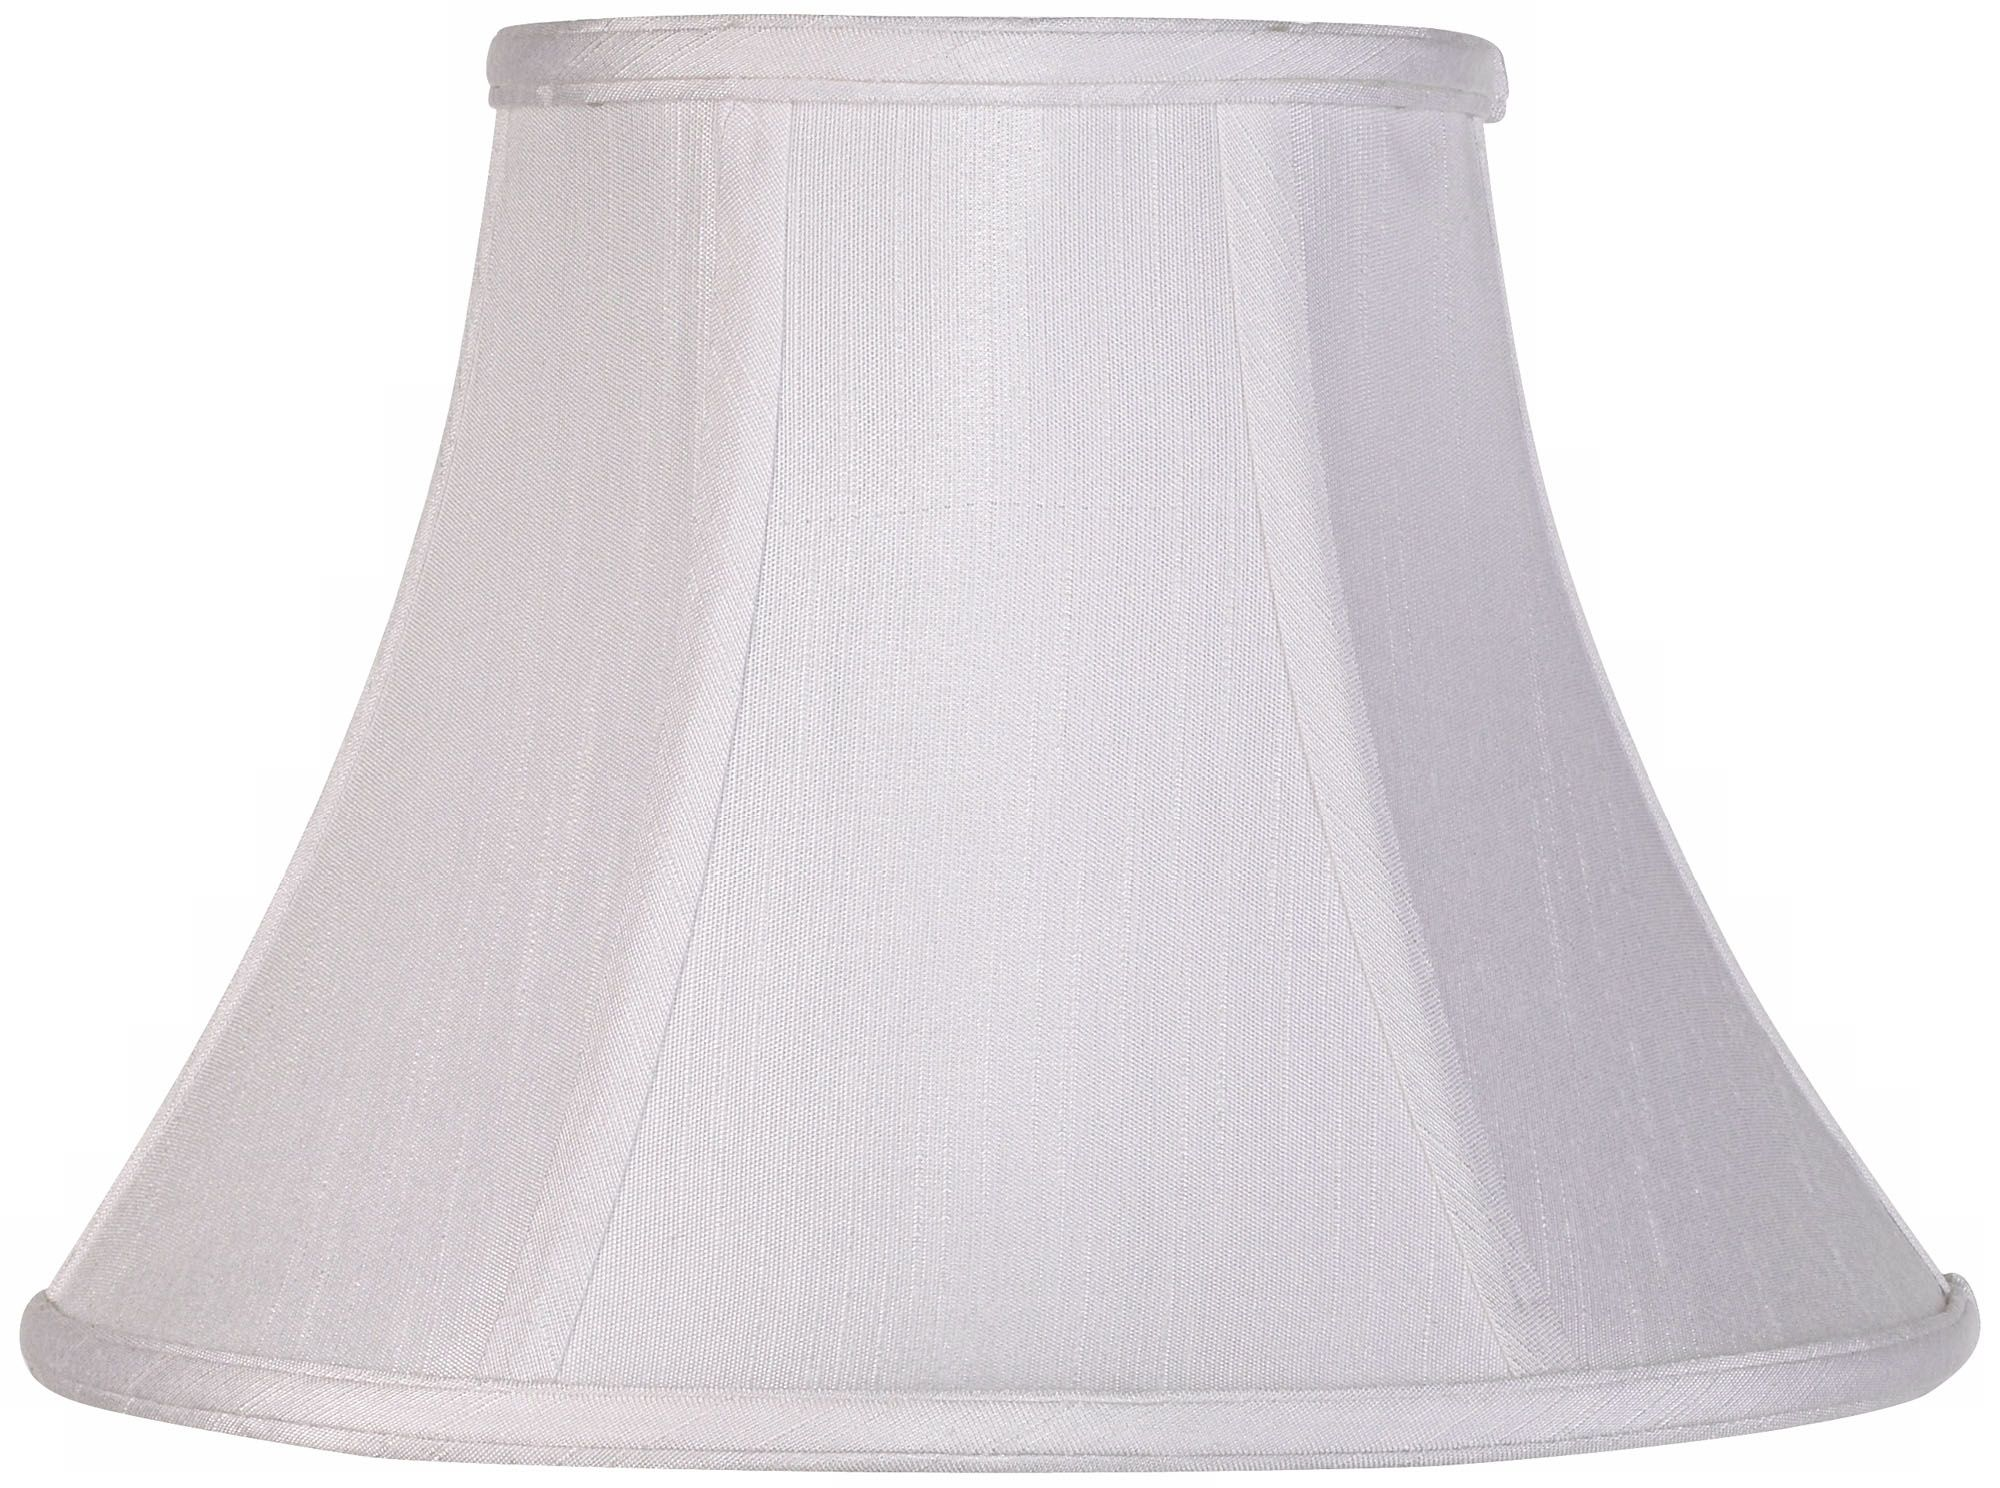 Imperial Collection White Bell Lamp Shade 6x12x9 (Spider)